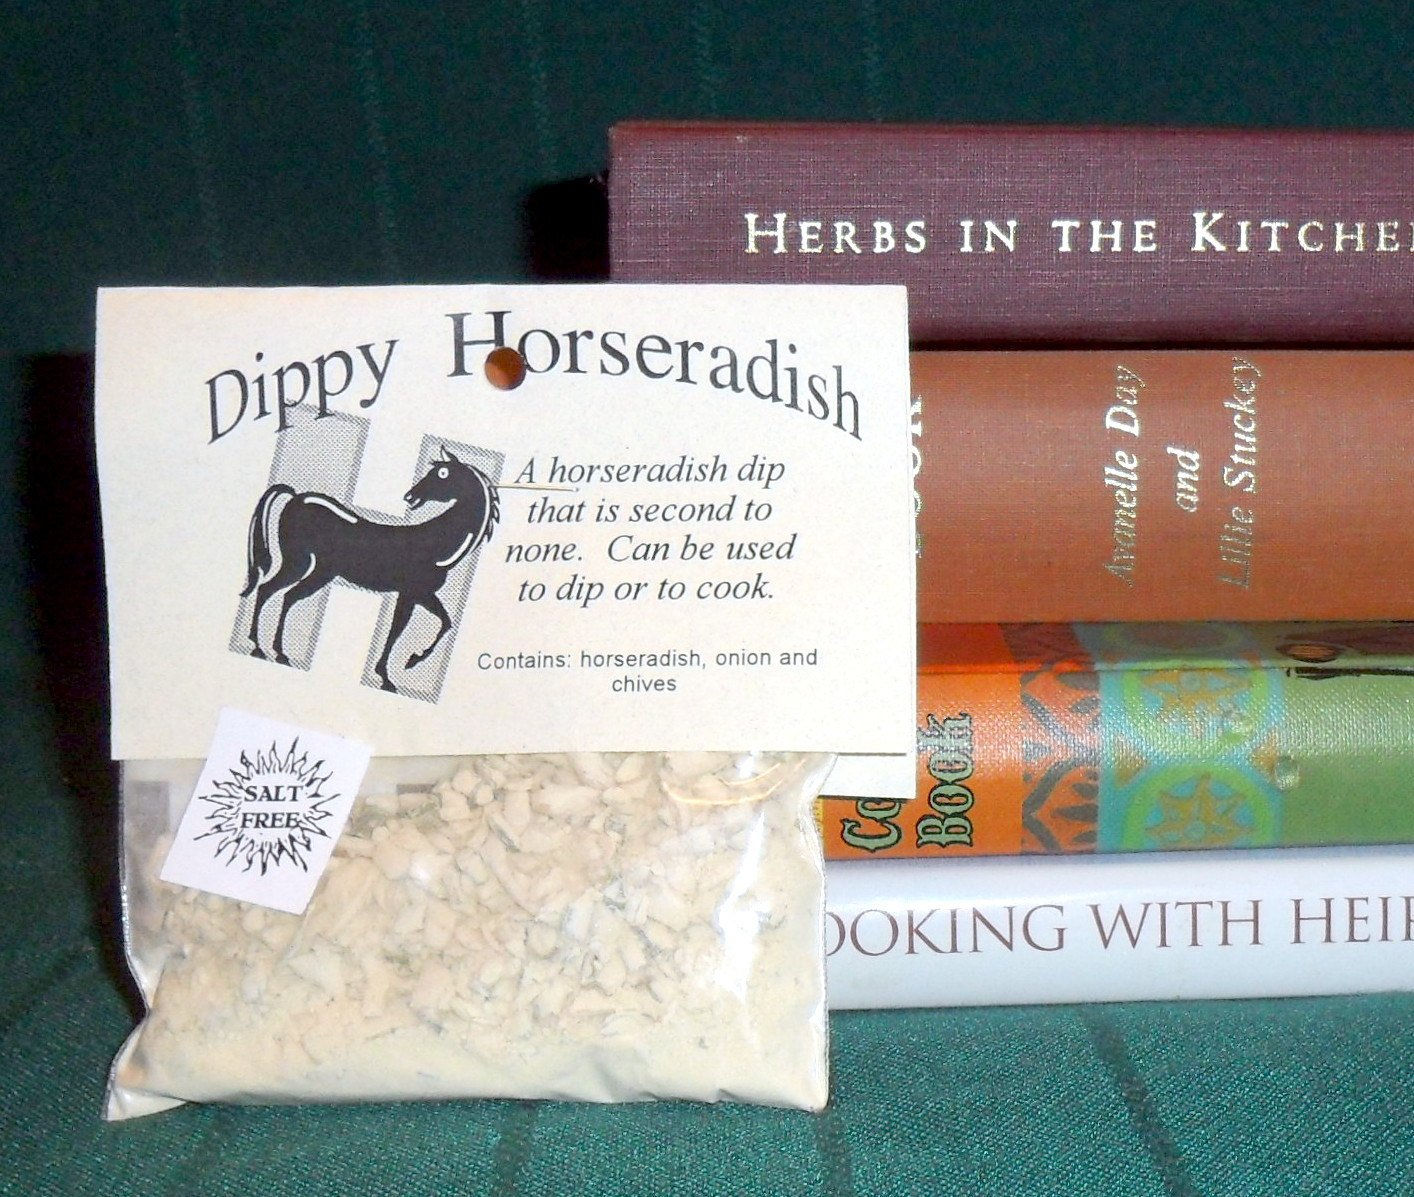 Horseradish Dip Mix, Hand-blended Herb Mix, no salt, chives, dry mix, salt free